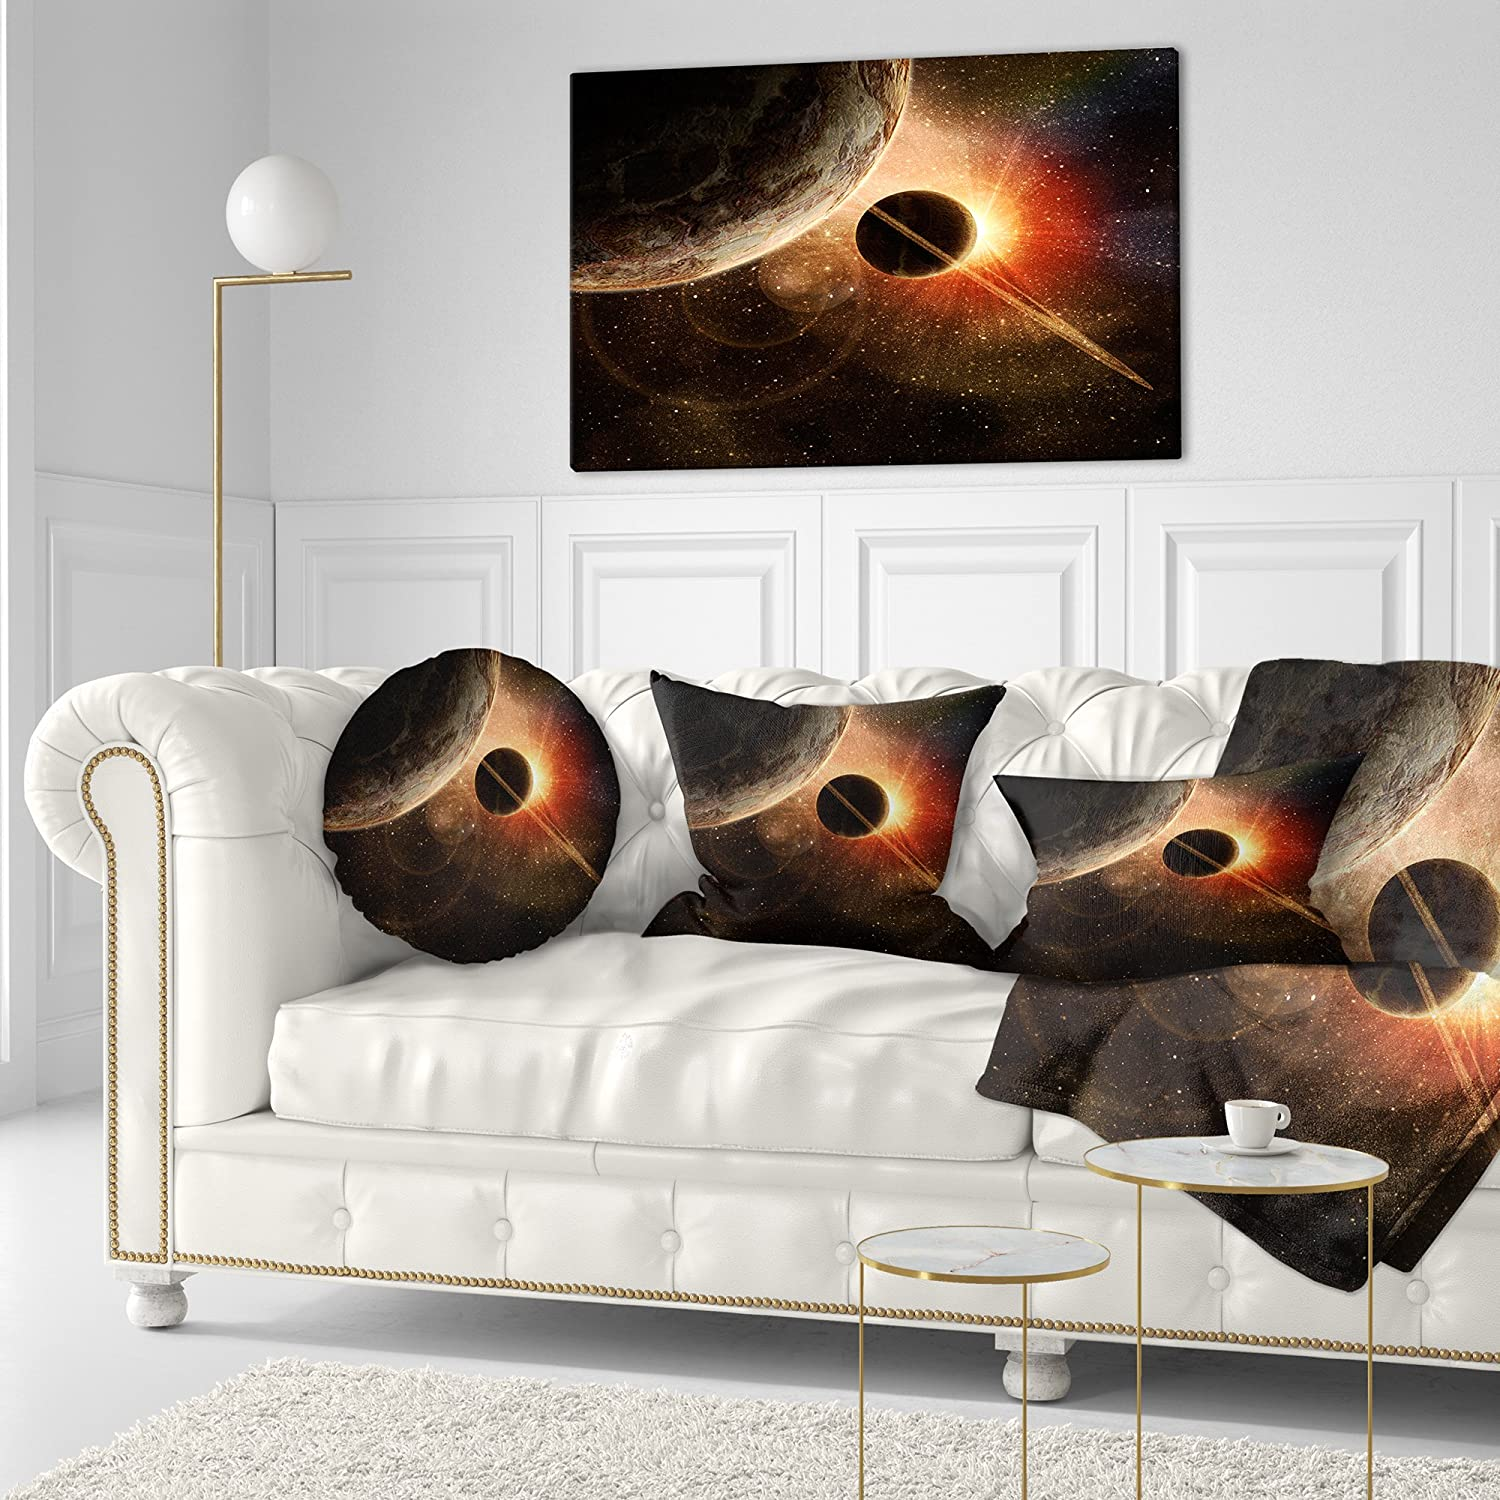 Sofa Throw Pillow 16 Designart CU6745-16-16-C Planet with Rings Contemporary Round Cushion Cover for Living Room